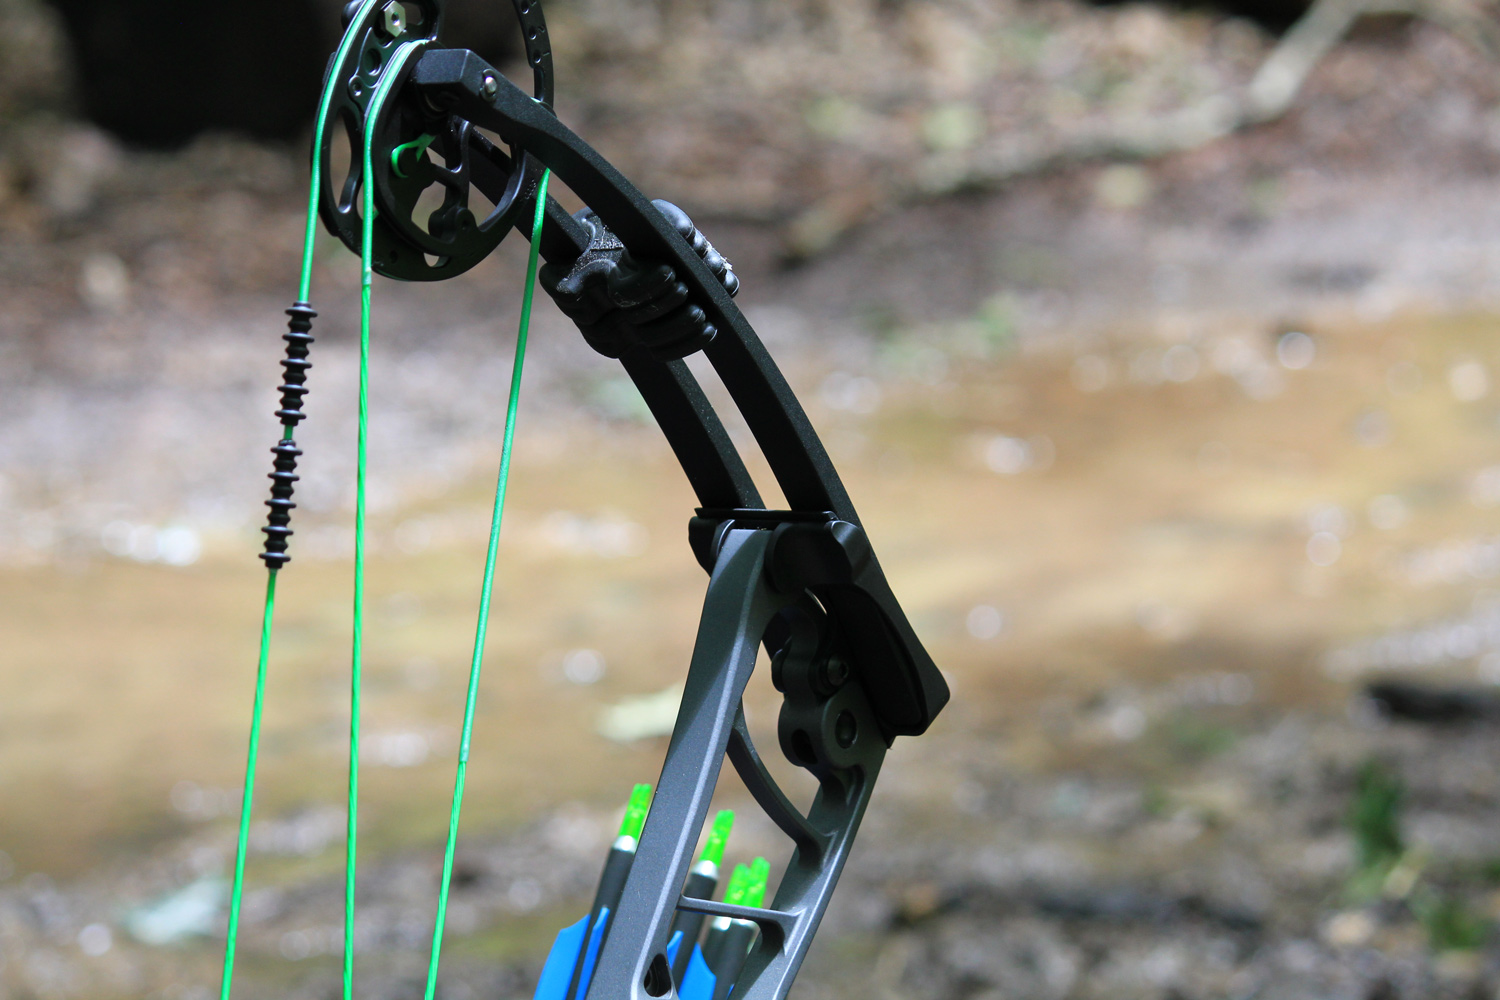 Winner's Choice Strings - Fluorescent Green Colors on a BCYX Material